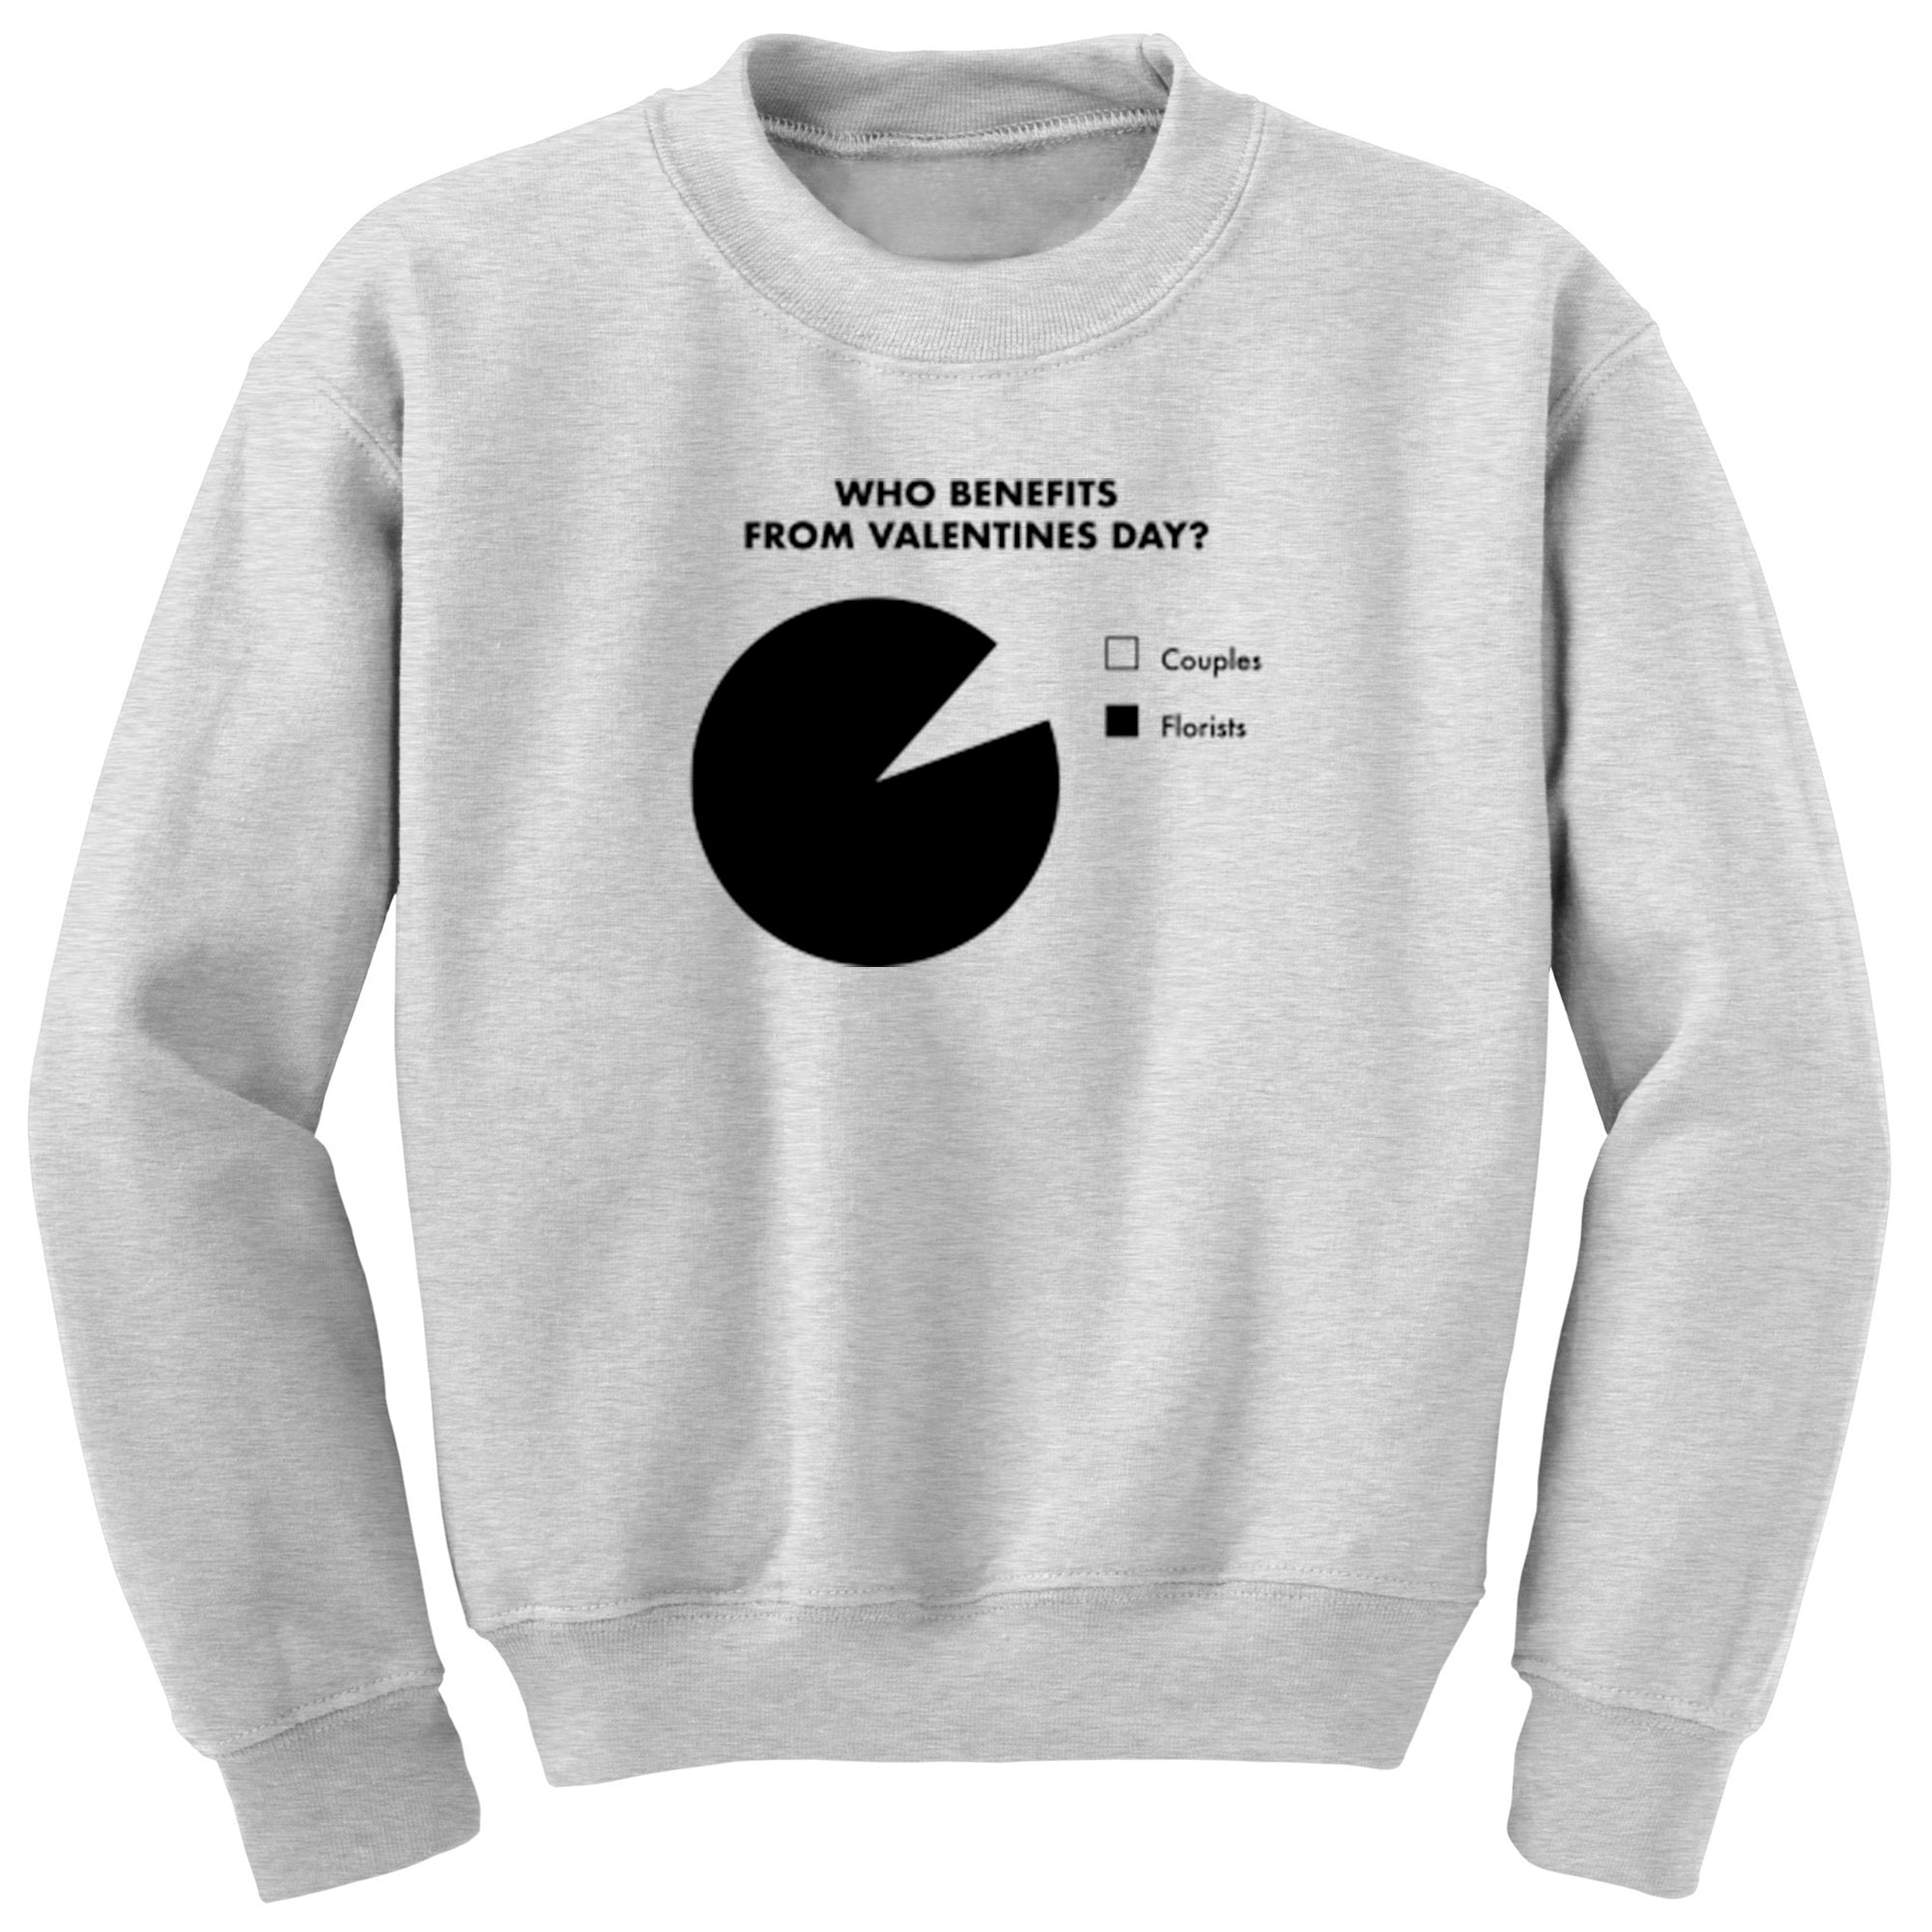 Who Benefits From Valentines Day? Unisex Jumper A0070 - Illustrated Identity Ltd.